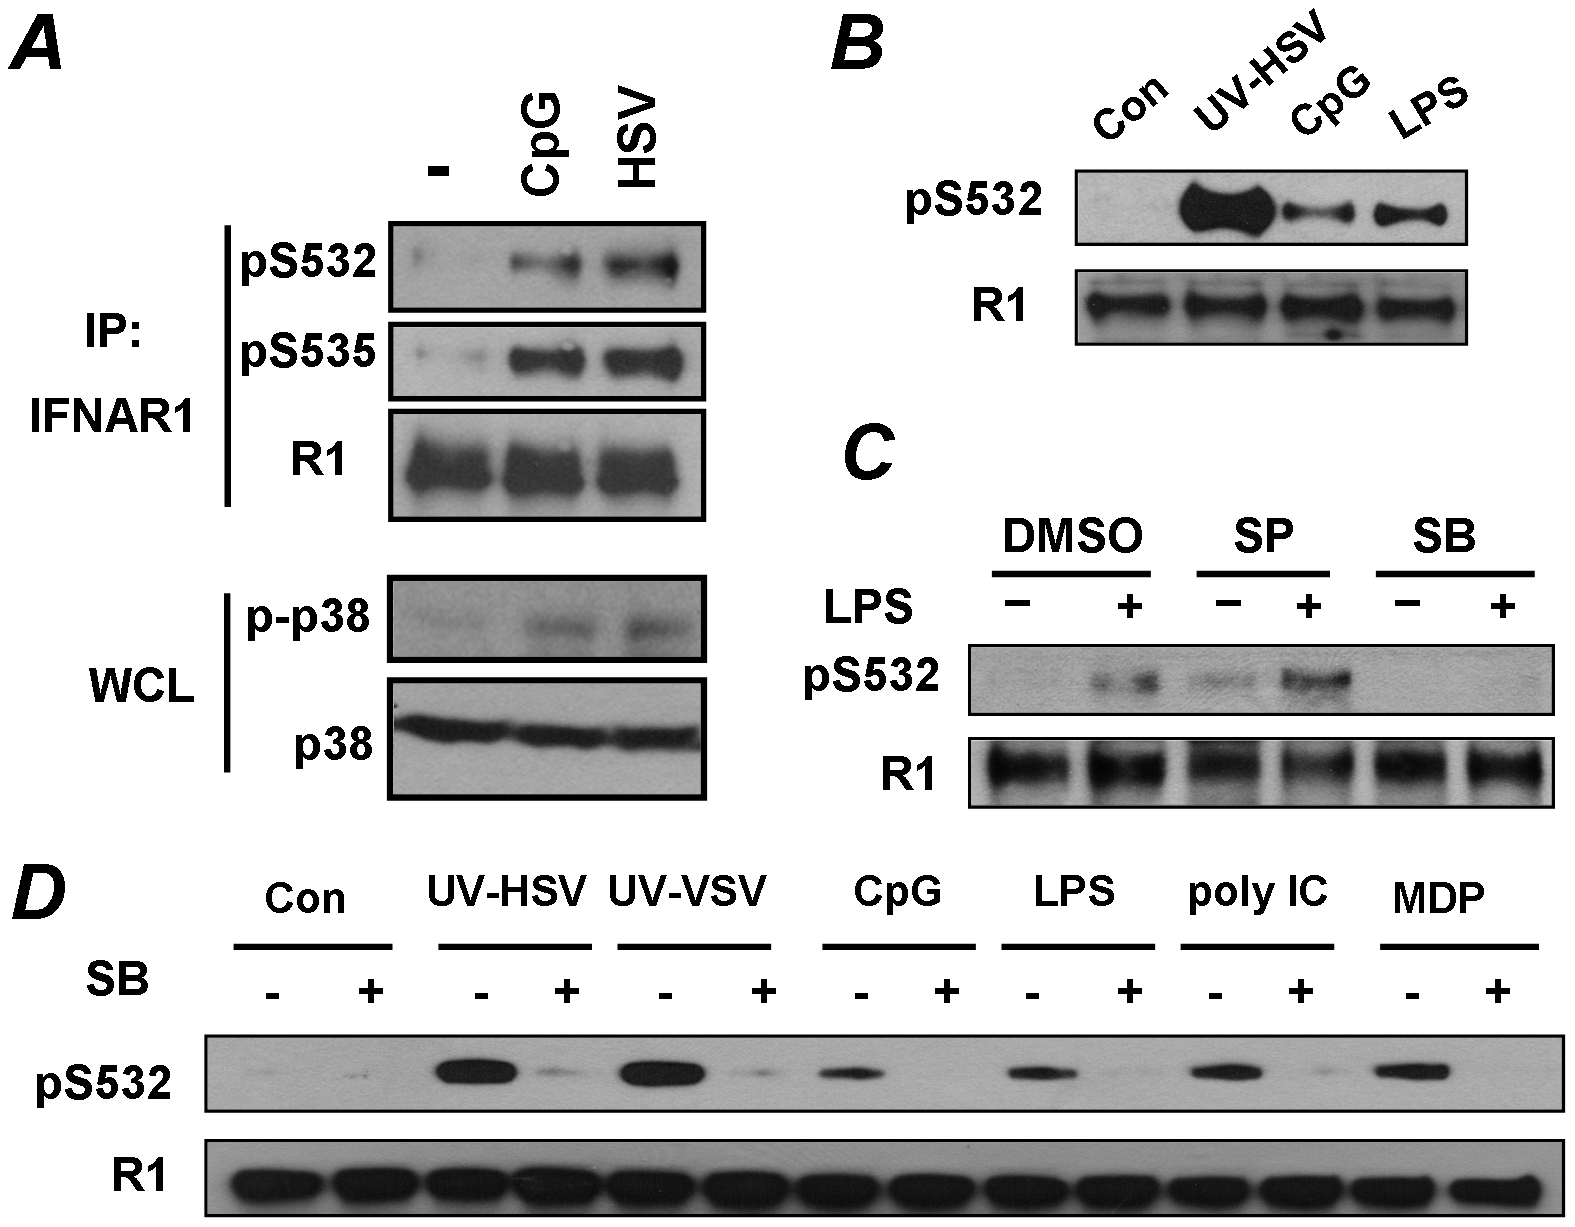 Pathogen recognition receptor signaling induces p38 kinase-dependent priming phosphorylation of IFNAR1.